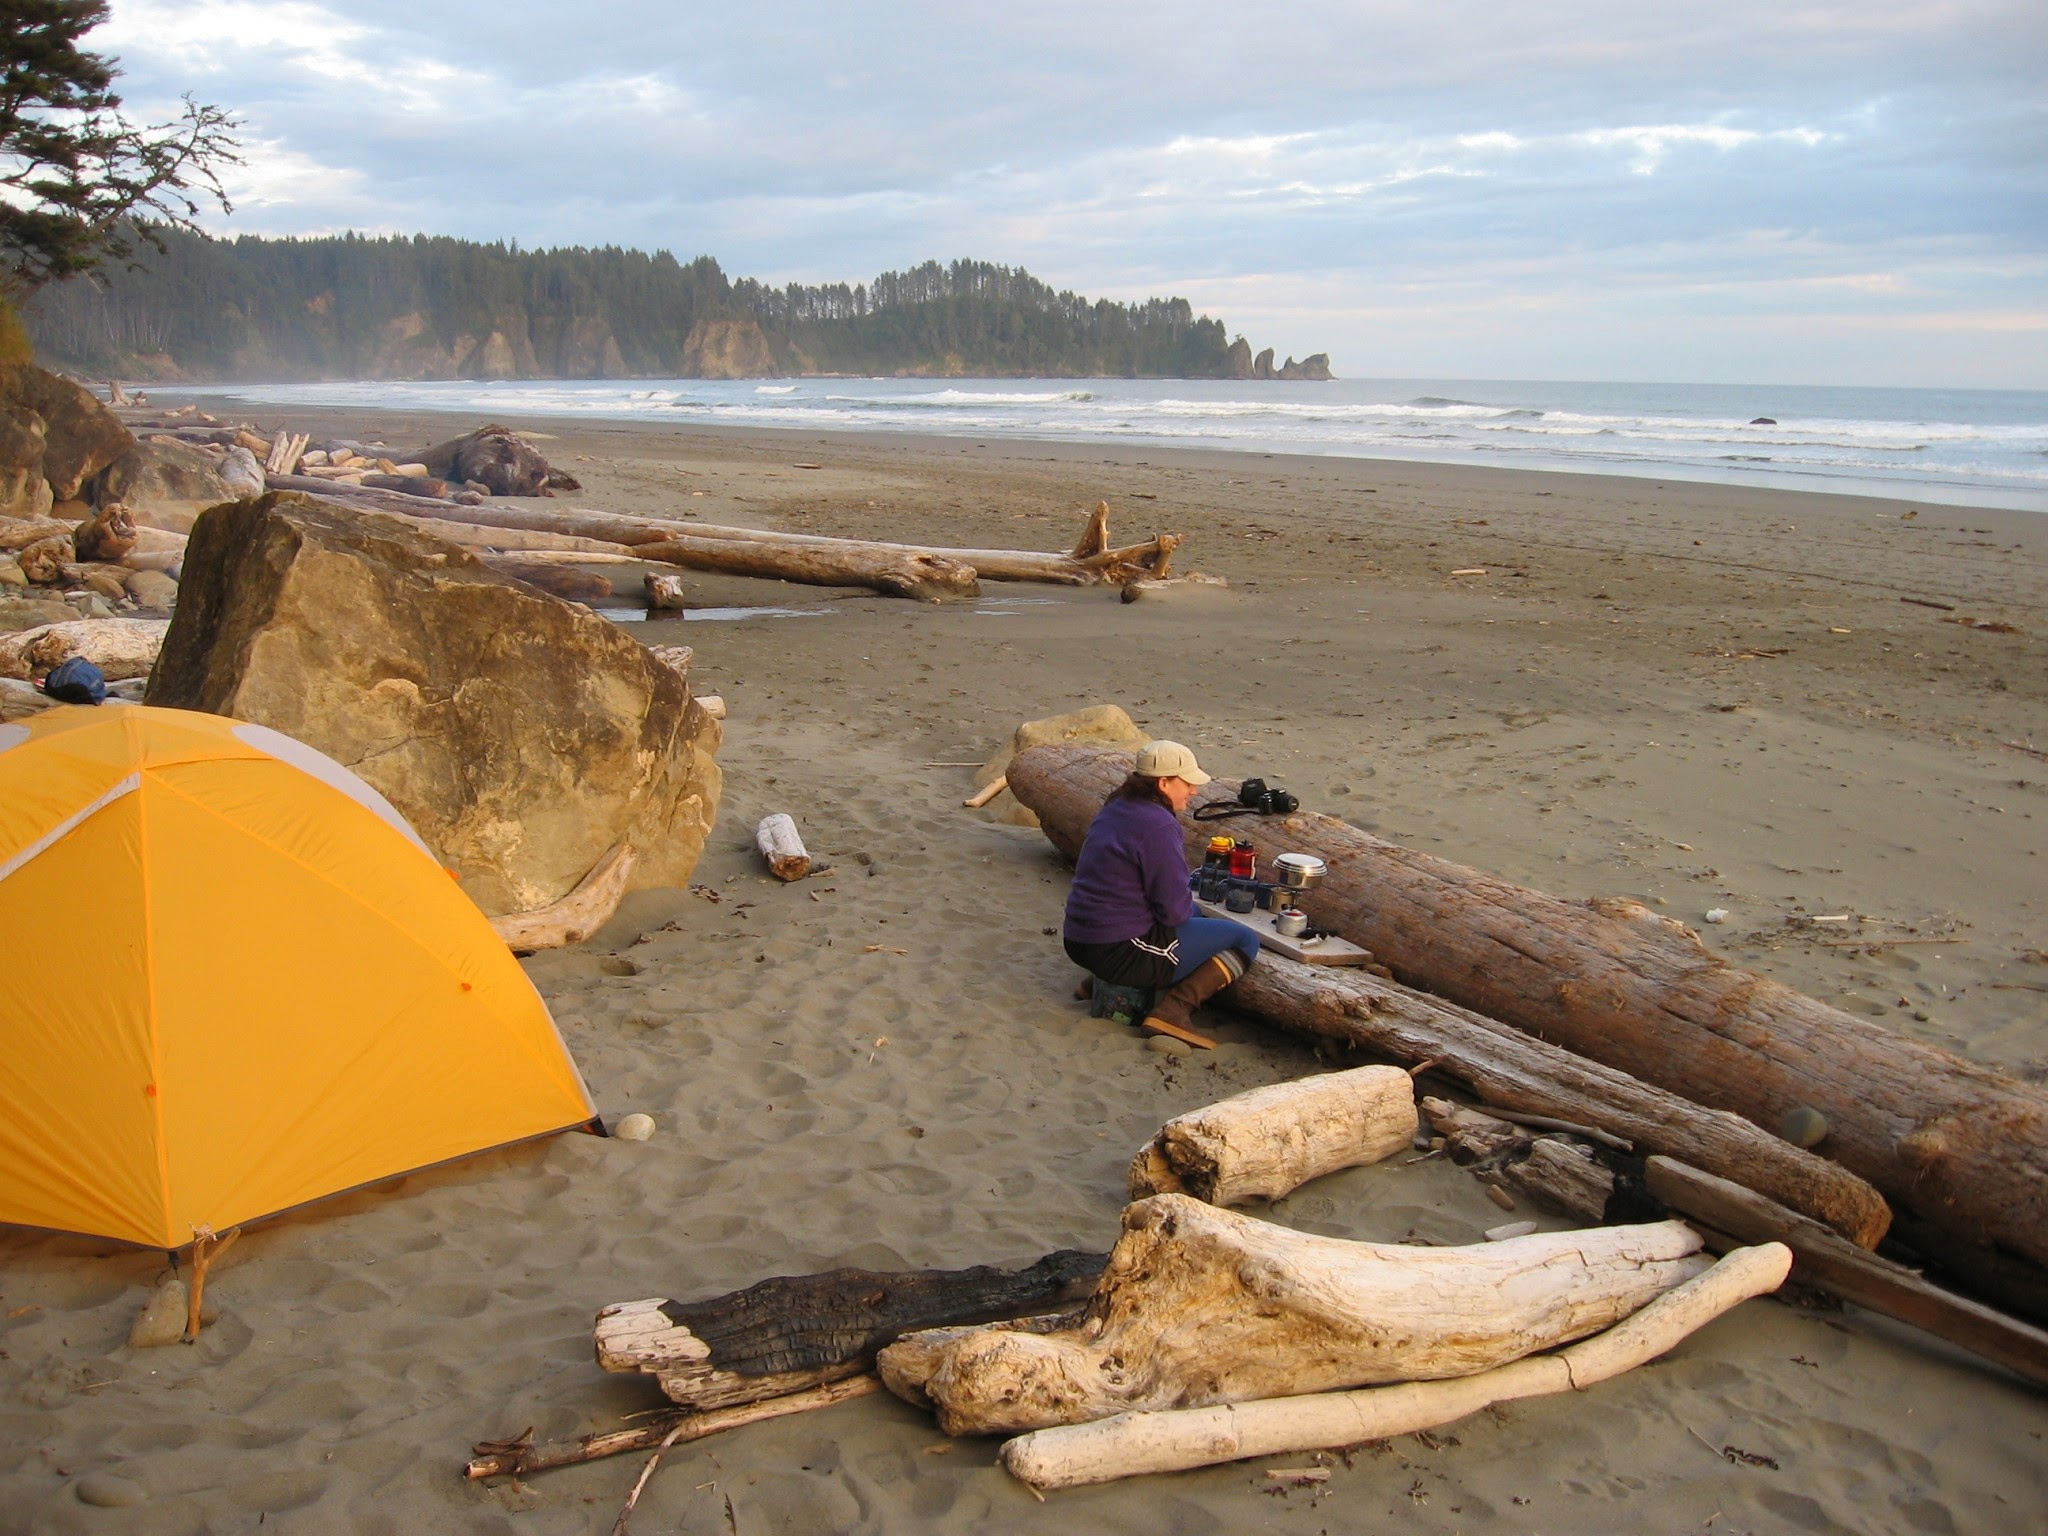 Sandy beach with driftwood surrounded by evergreen trees and ocean. There are clouds in the sky and a yellow tent. A women is using a backpacking stove